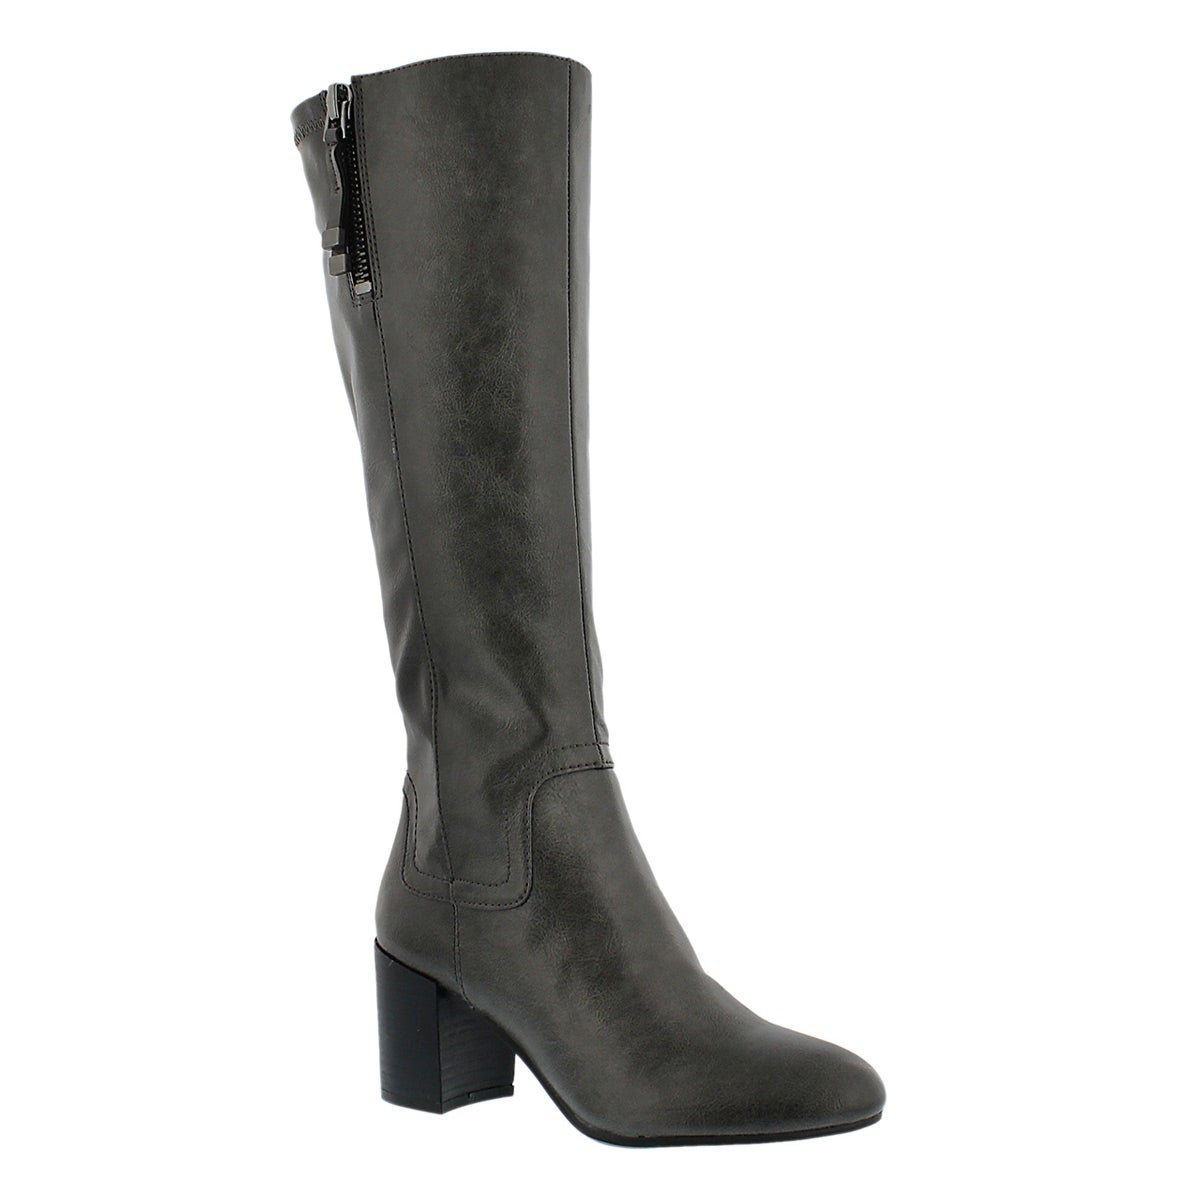 Lds Nostalgia charcoal hi dress boot